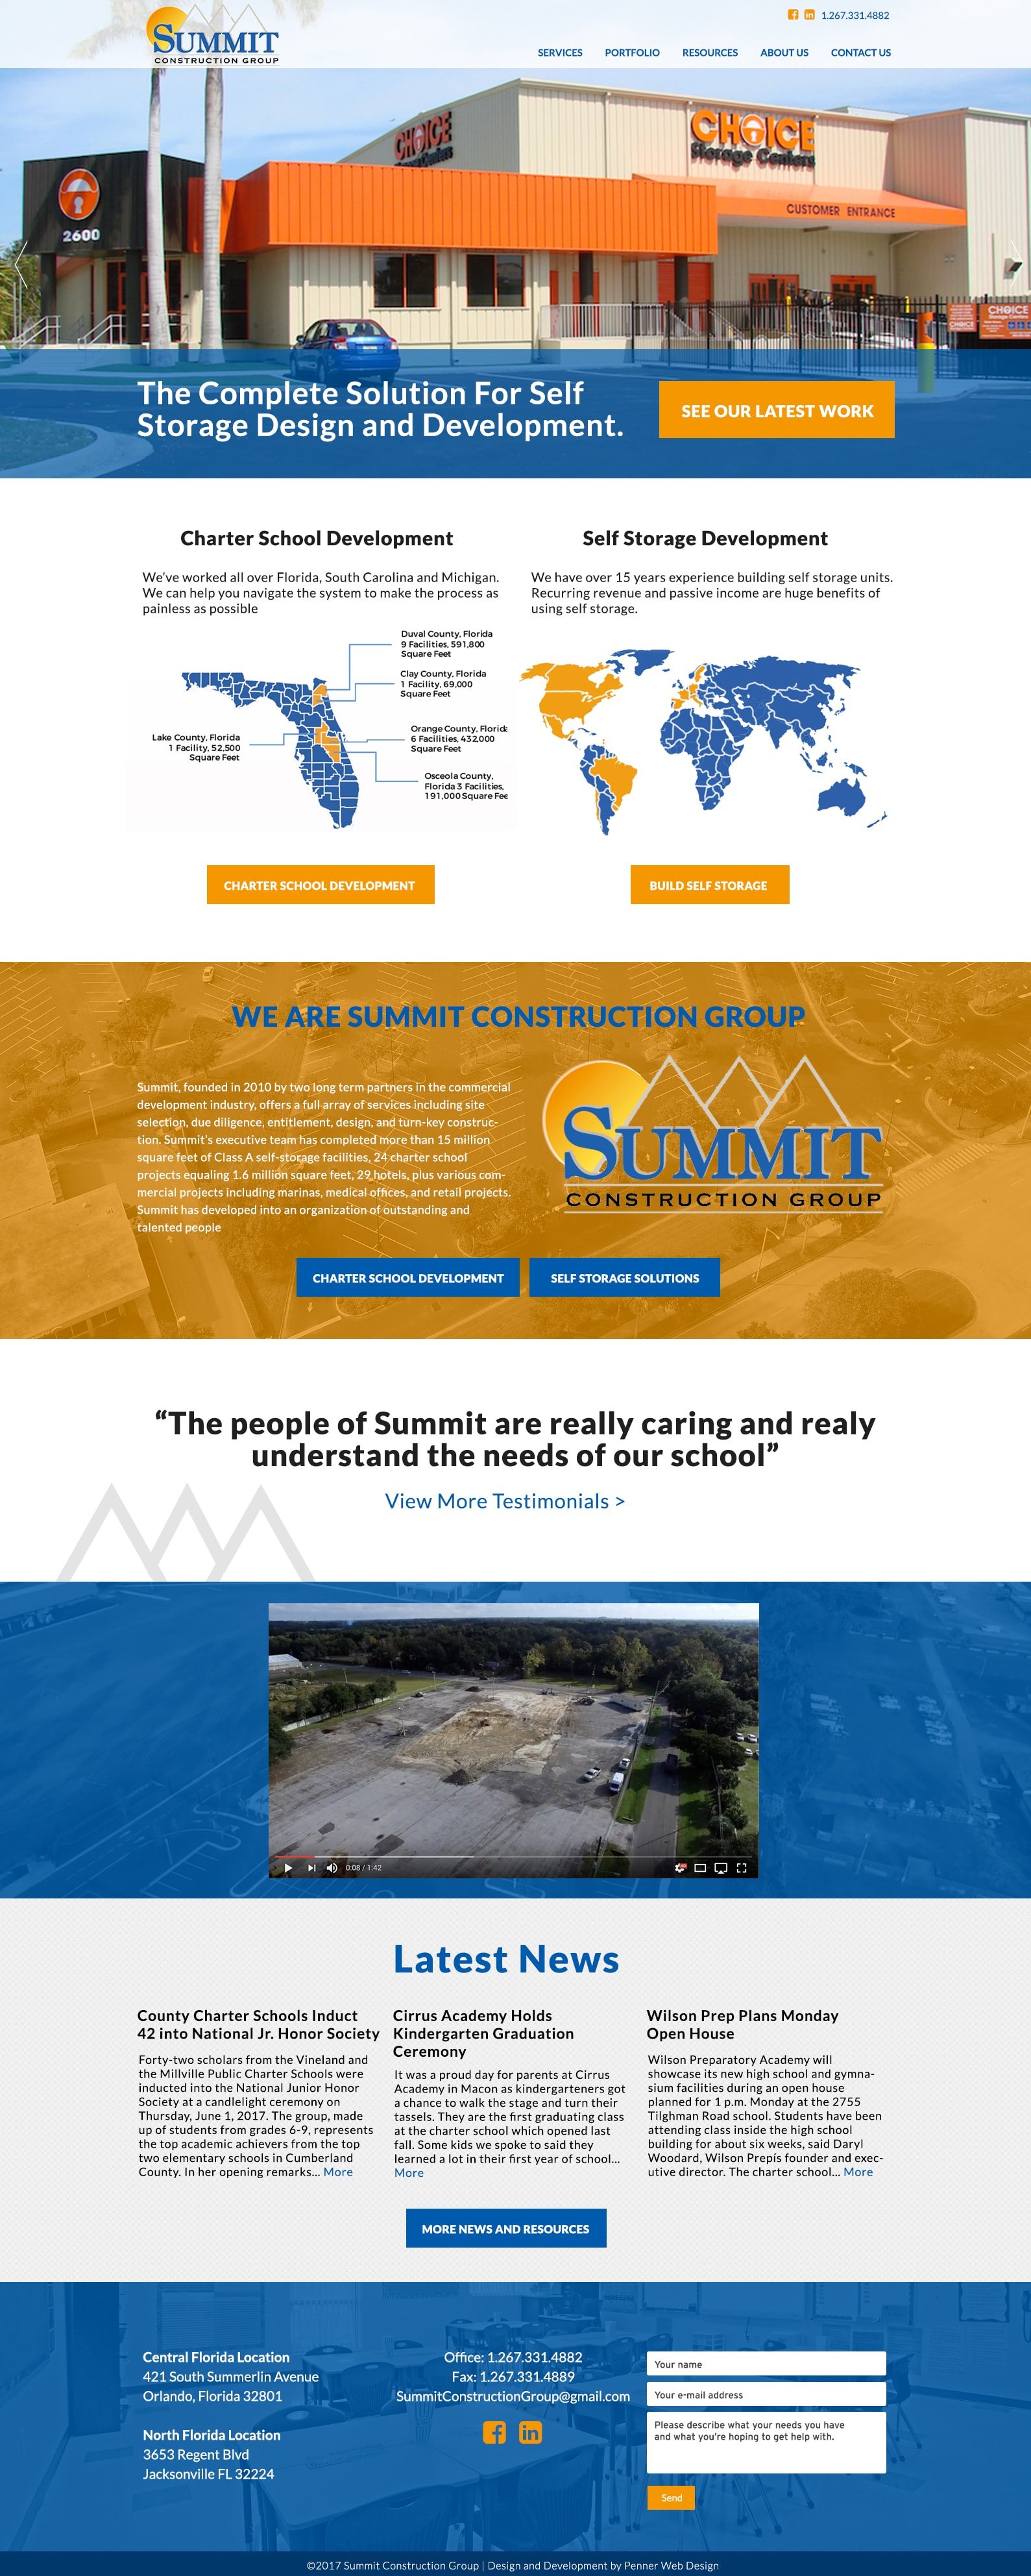 summit-construction-website-design